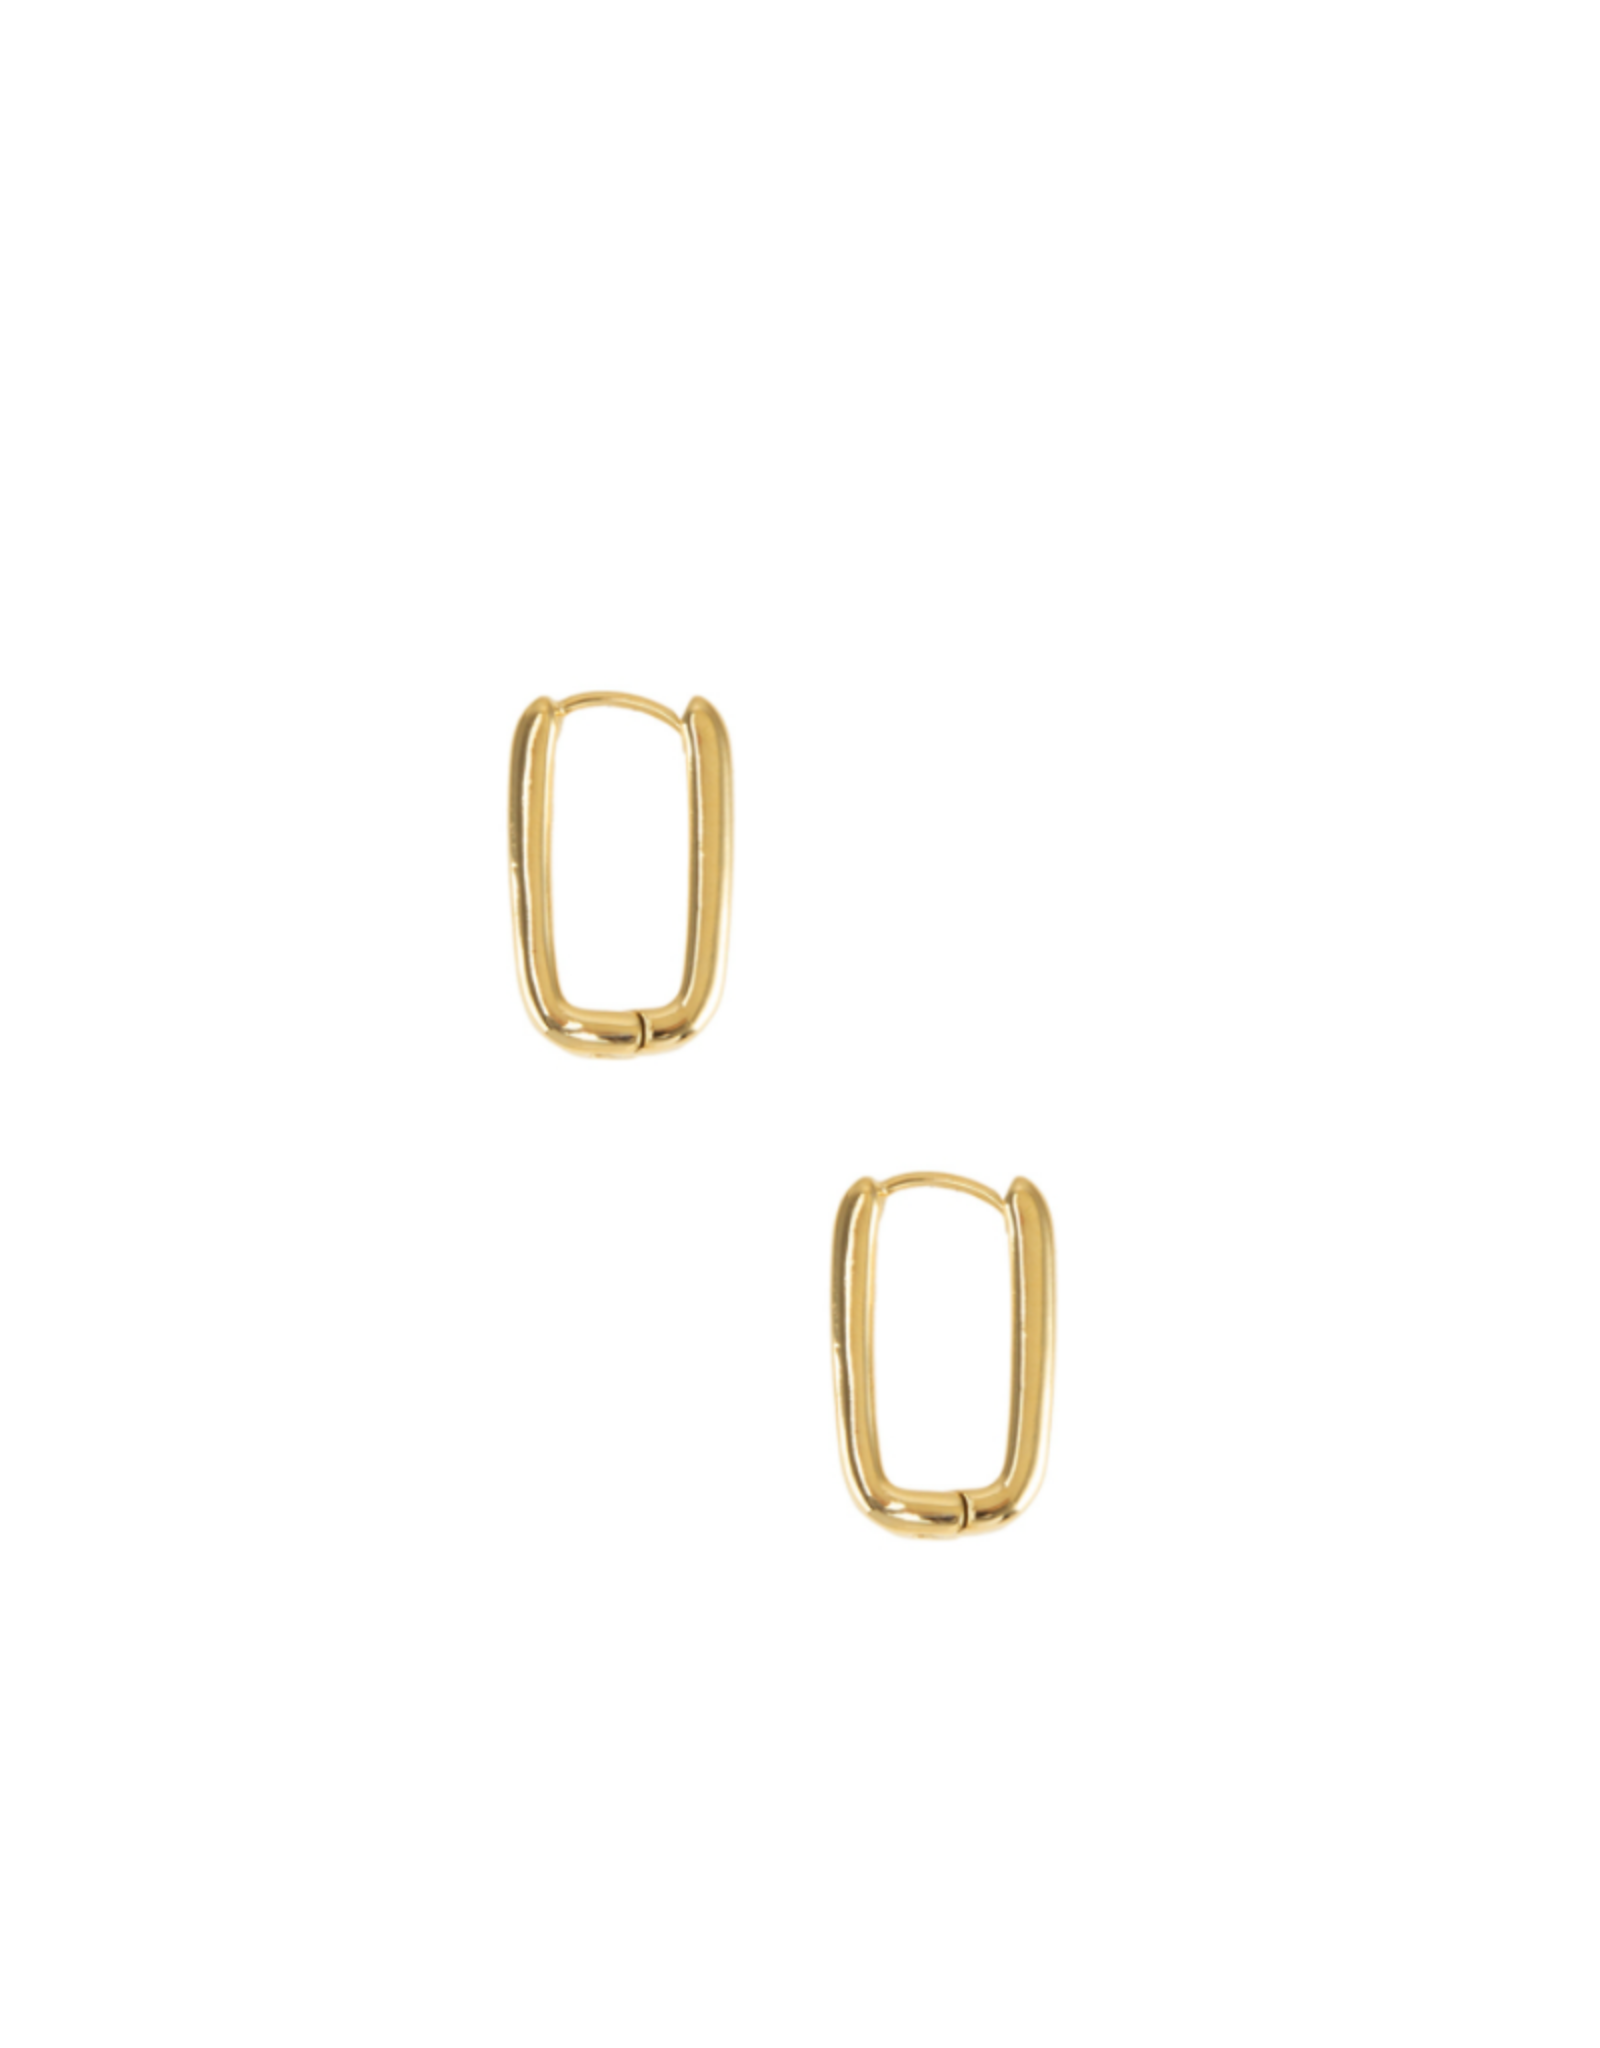 EARRINGS-GOLD DIPPED LINK 2MM